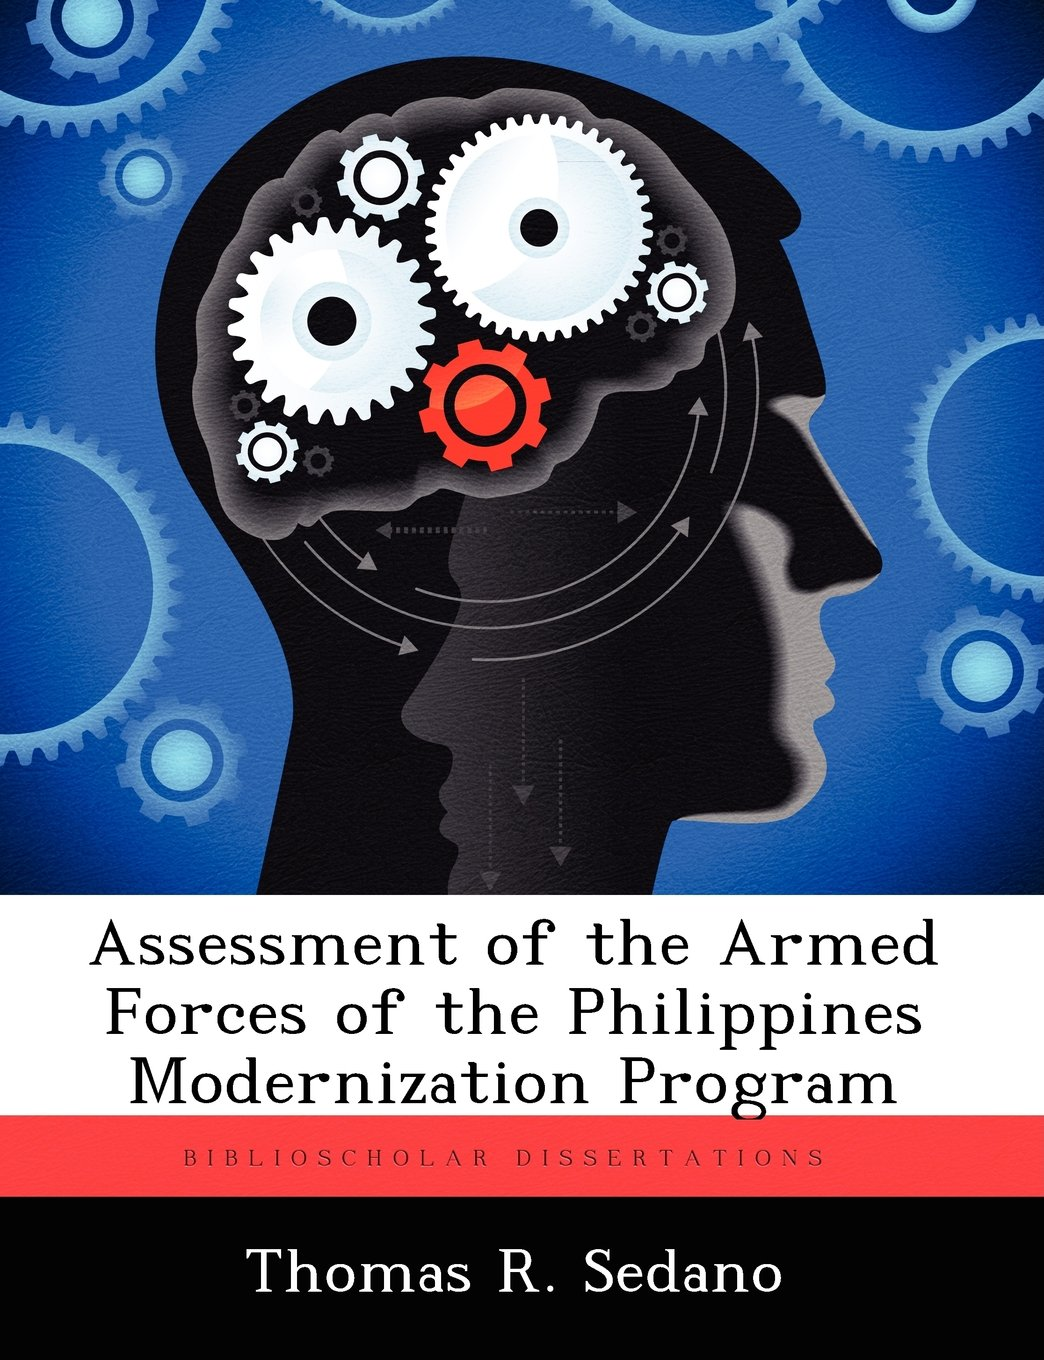 Assessment of the Armed Forces of the Philippines Modernization Program Paperback – October 23, 2012